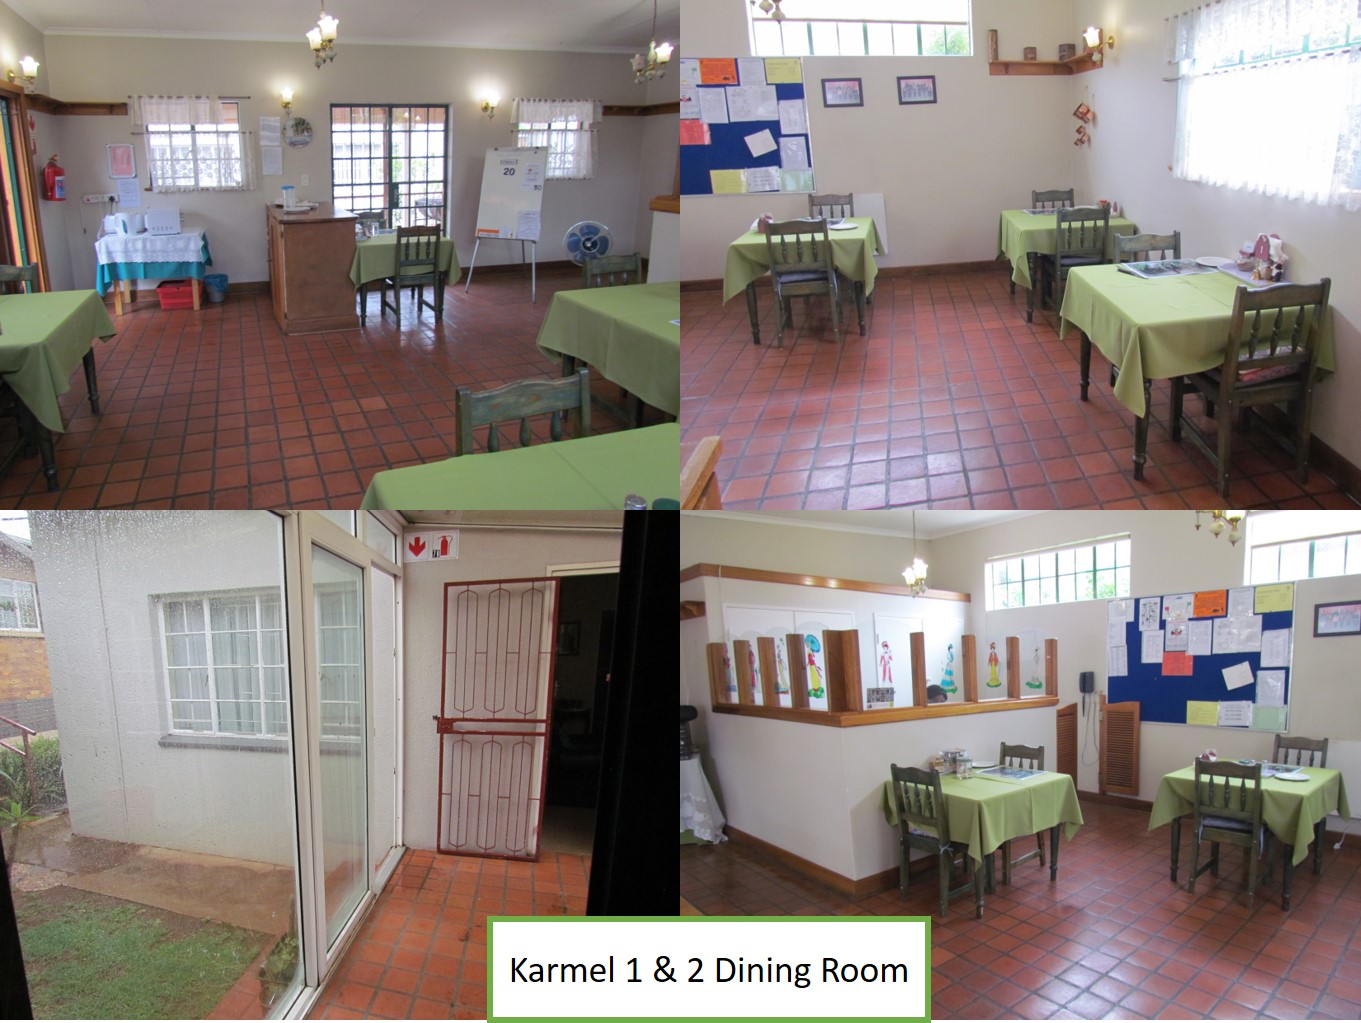 Karmel 1 and 2 Dining Room